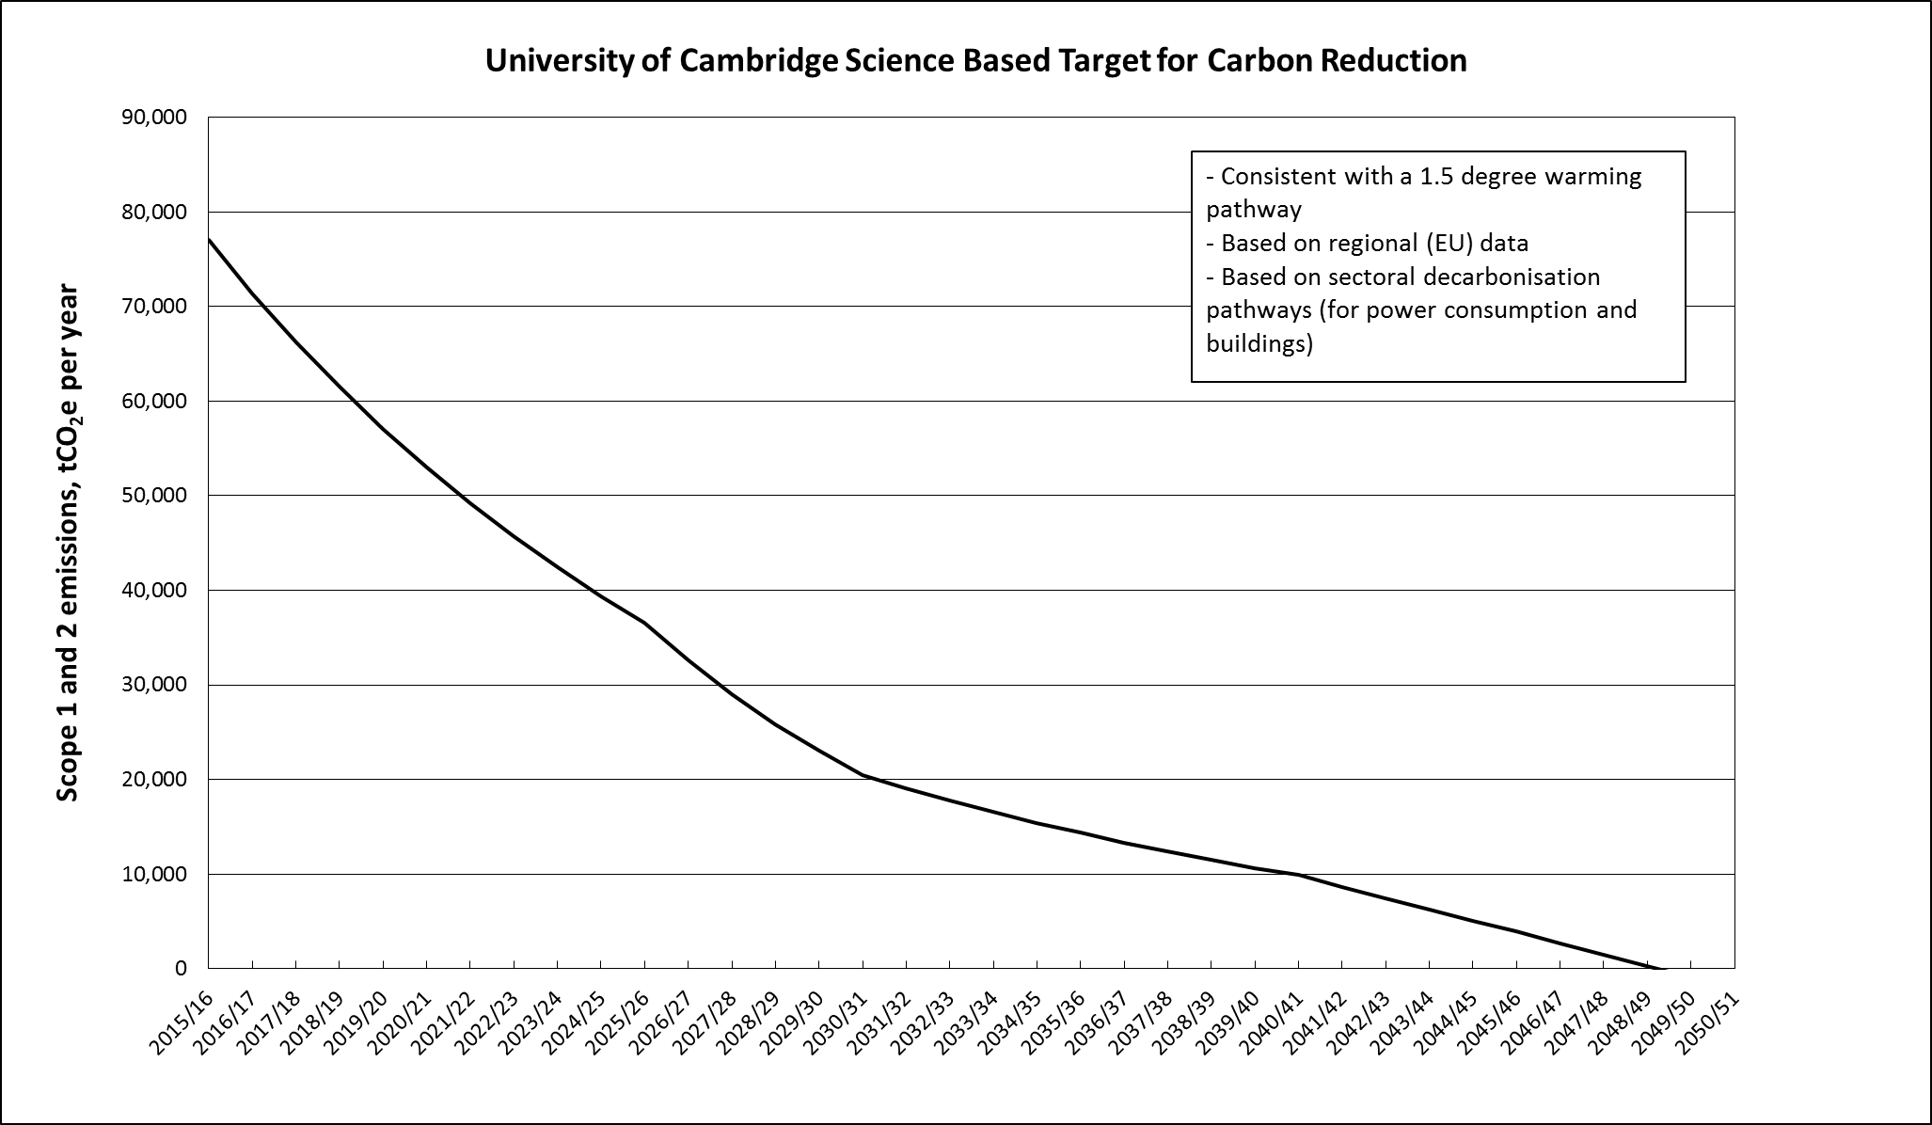 University of Cambridge Science Based Target for Carbon Reduction